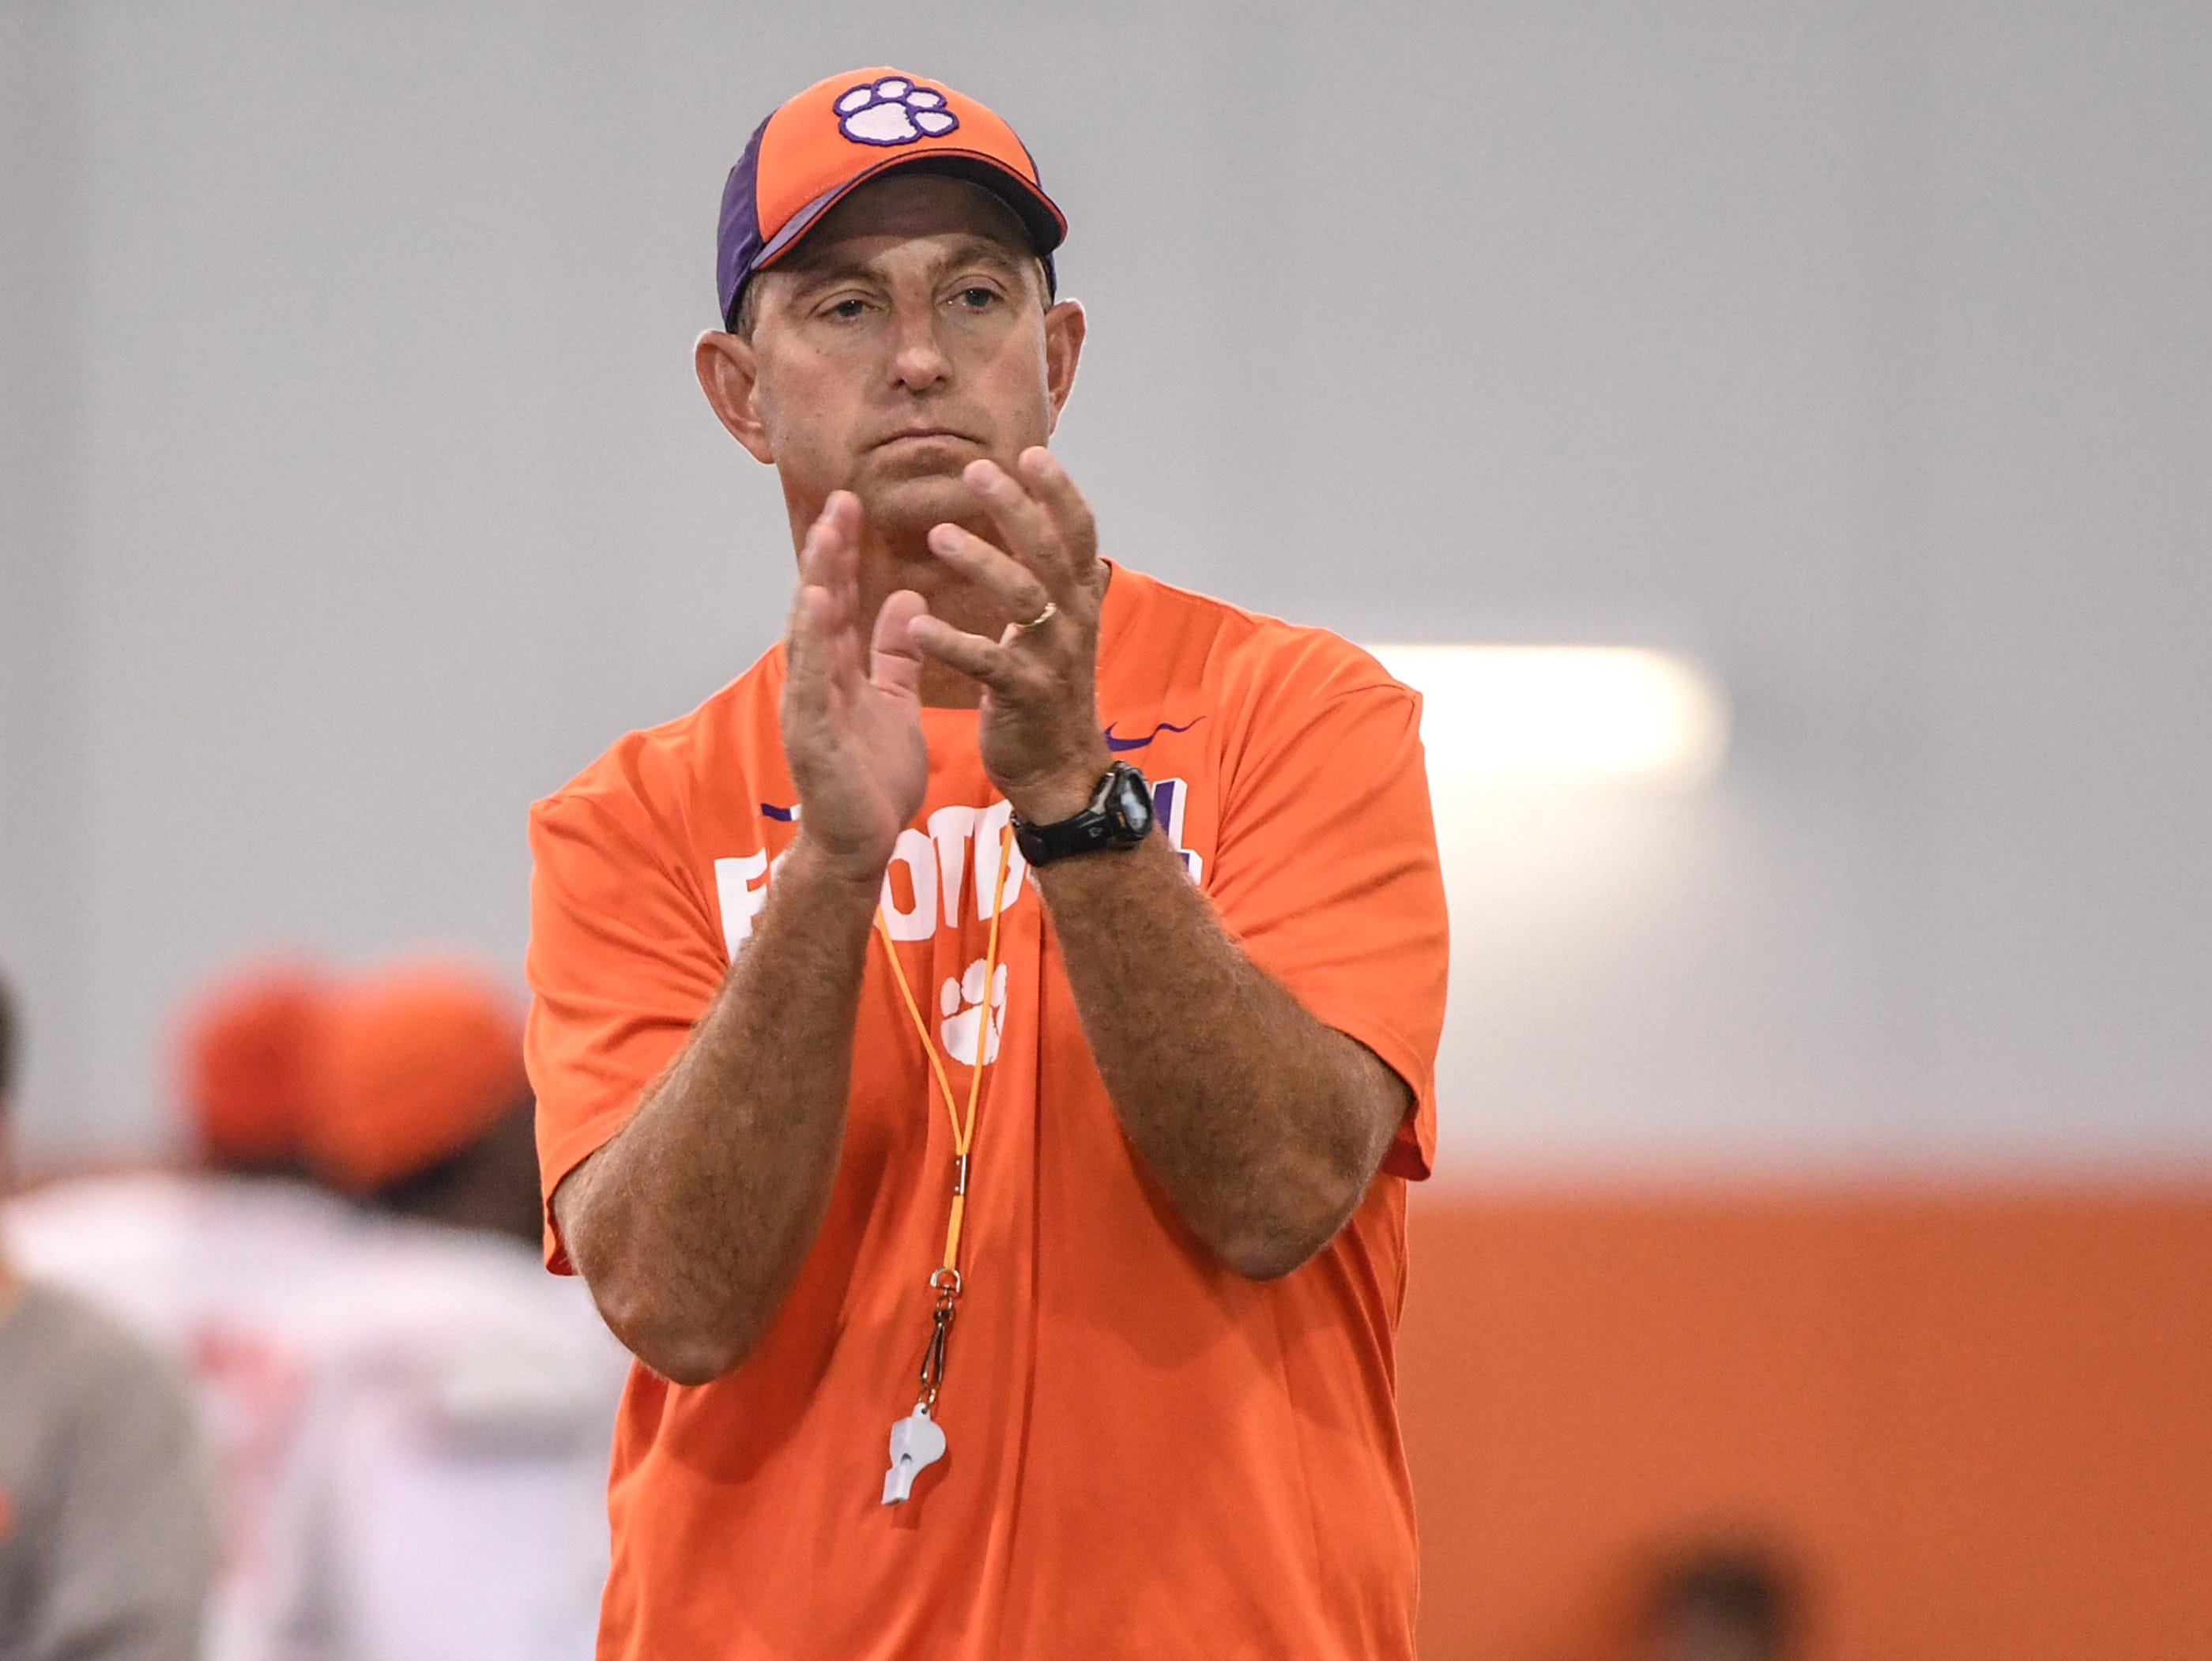 Clemson head coach Dabo Swinney claps during fall practice in Clemson on Wednesday.